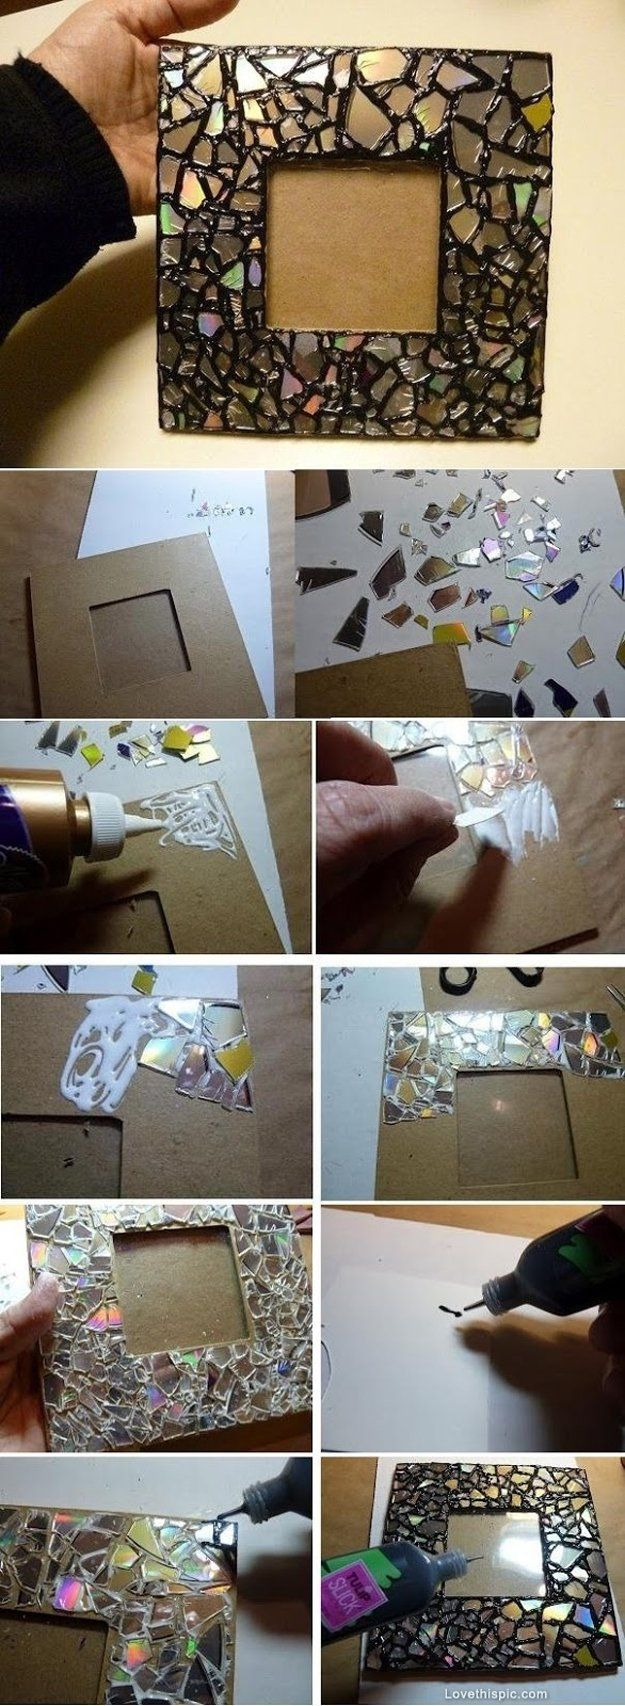 Best DIY Picture Frames and Photo Frame Ideas - DIY Mosaic Frame from Old CDs - How To Make Cool Handmade Projects from Wood, Canvas, Instagram Photos. Creative Birthday Gifts, Fun Crafts for Friends and Wall Art Tutorials http://diyprojectsforteens.com/diy-picture-frames